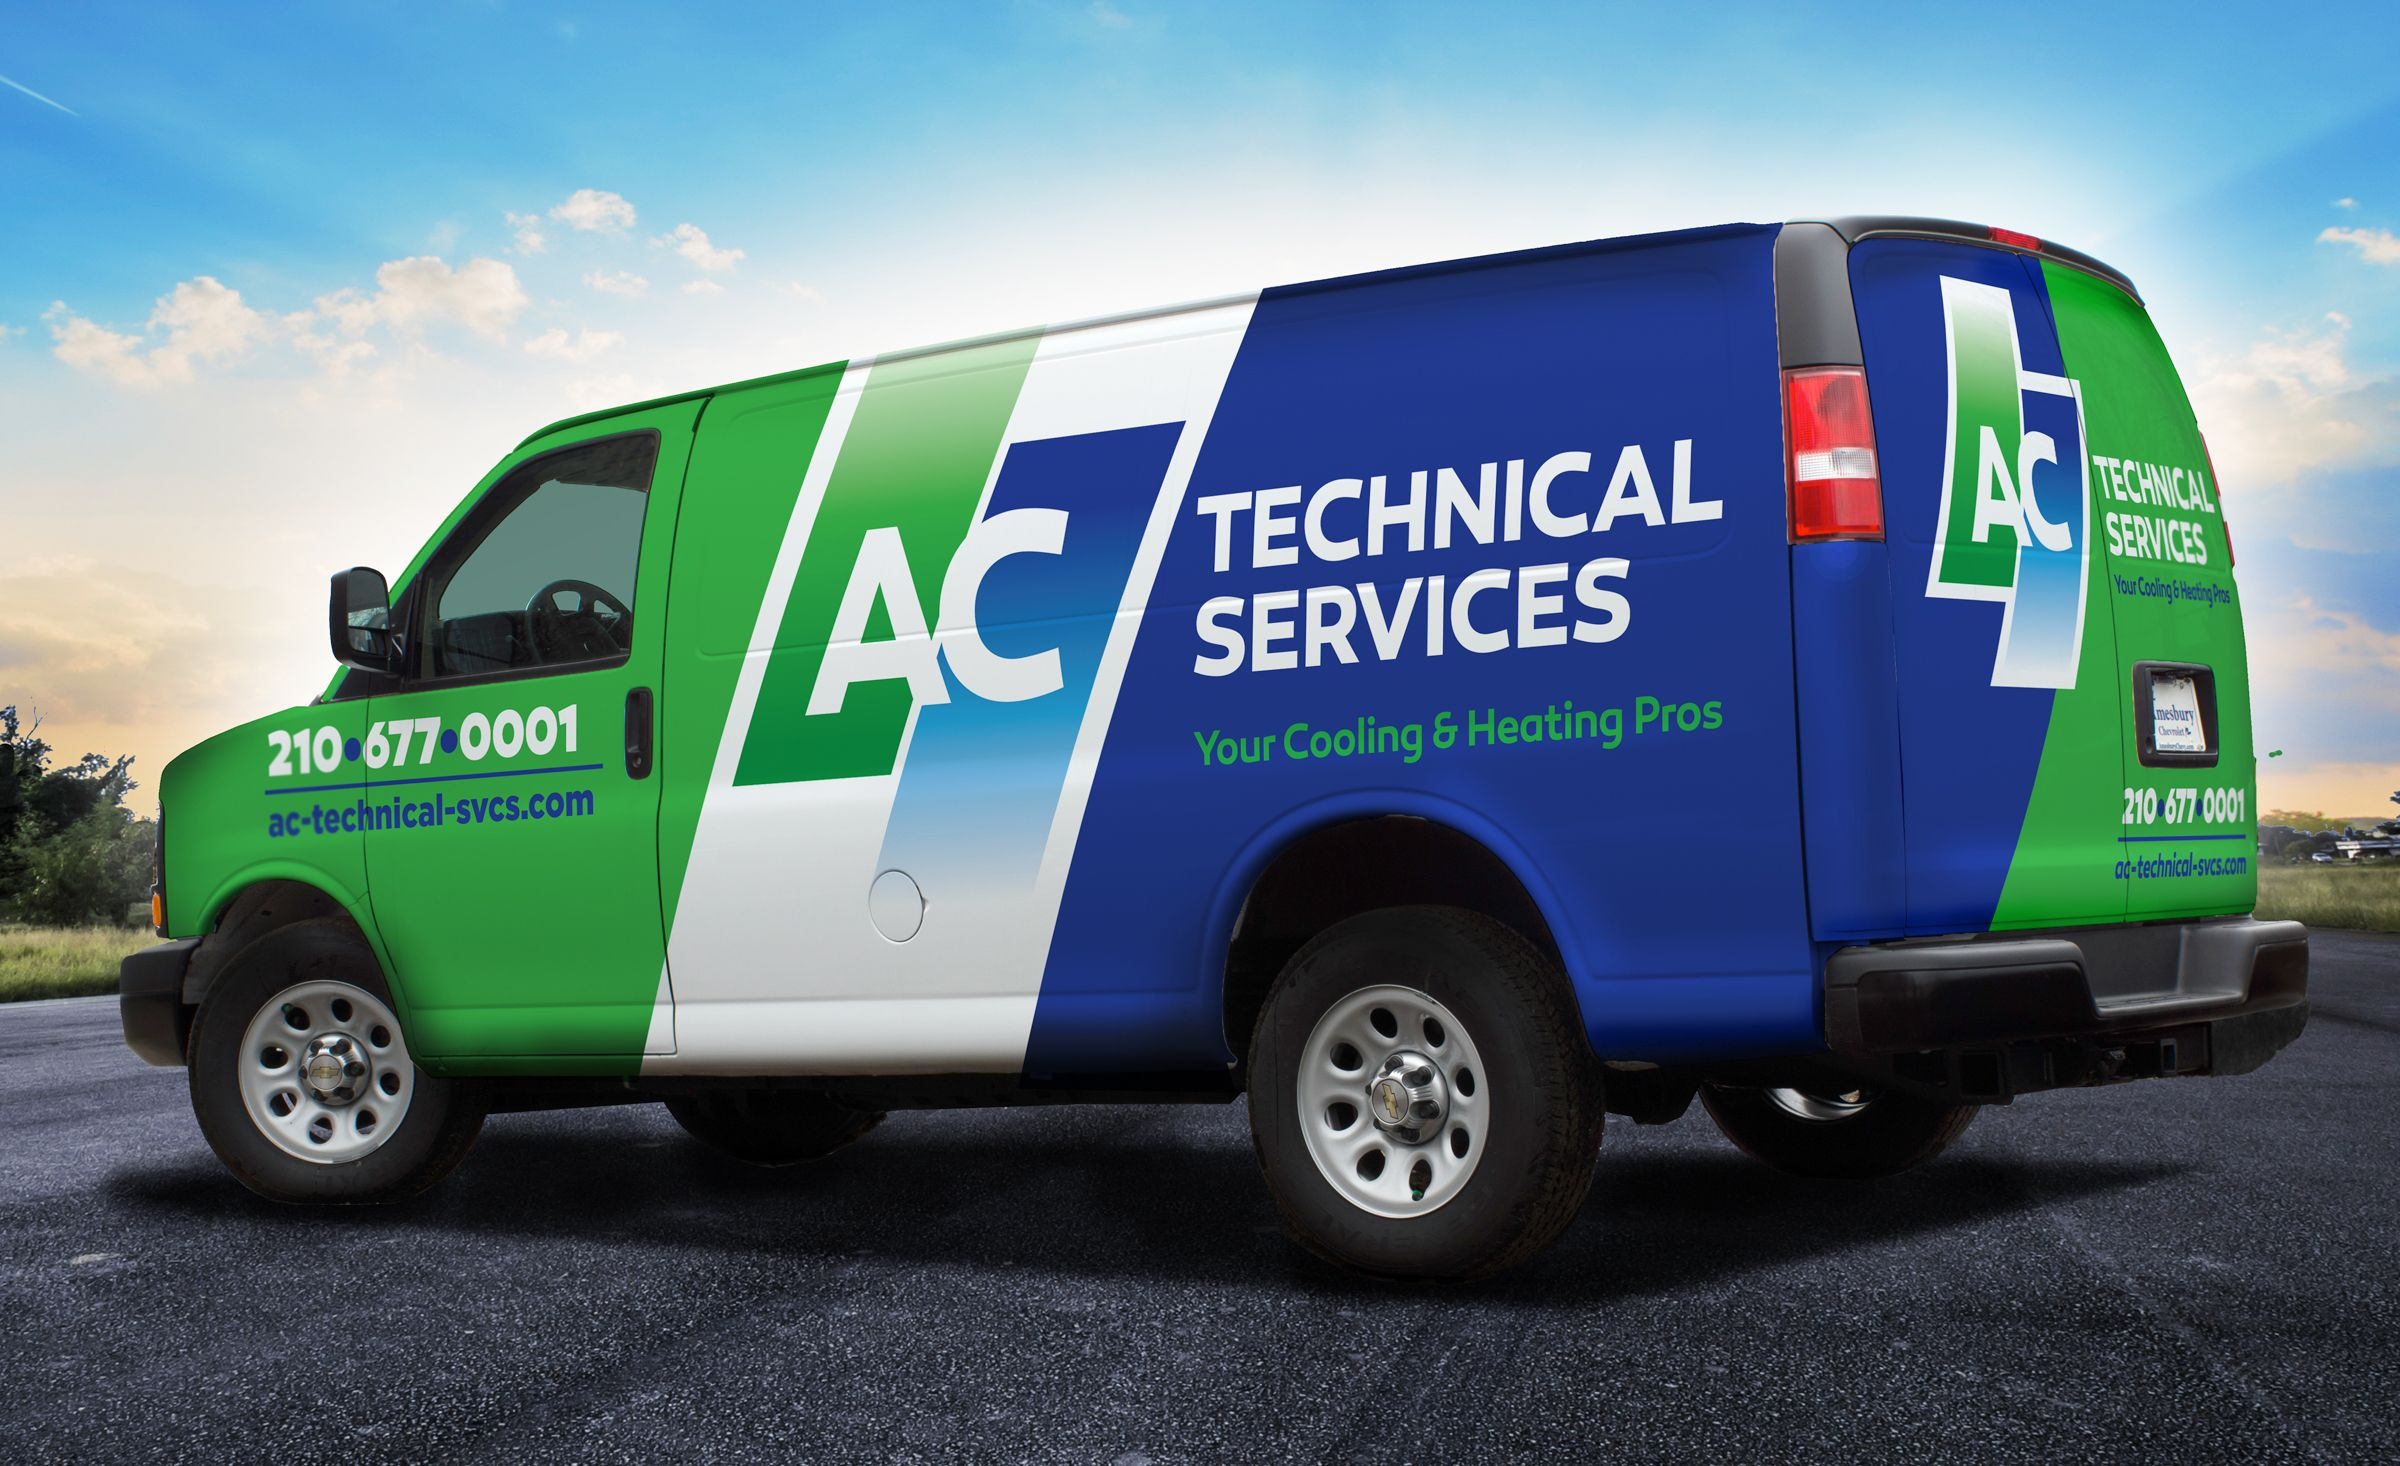 Ac Technical Services Kickcharge Creative Vehicle Signage Car